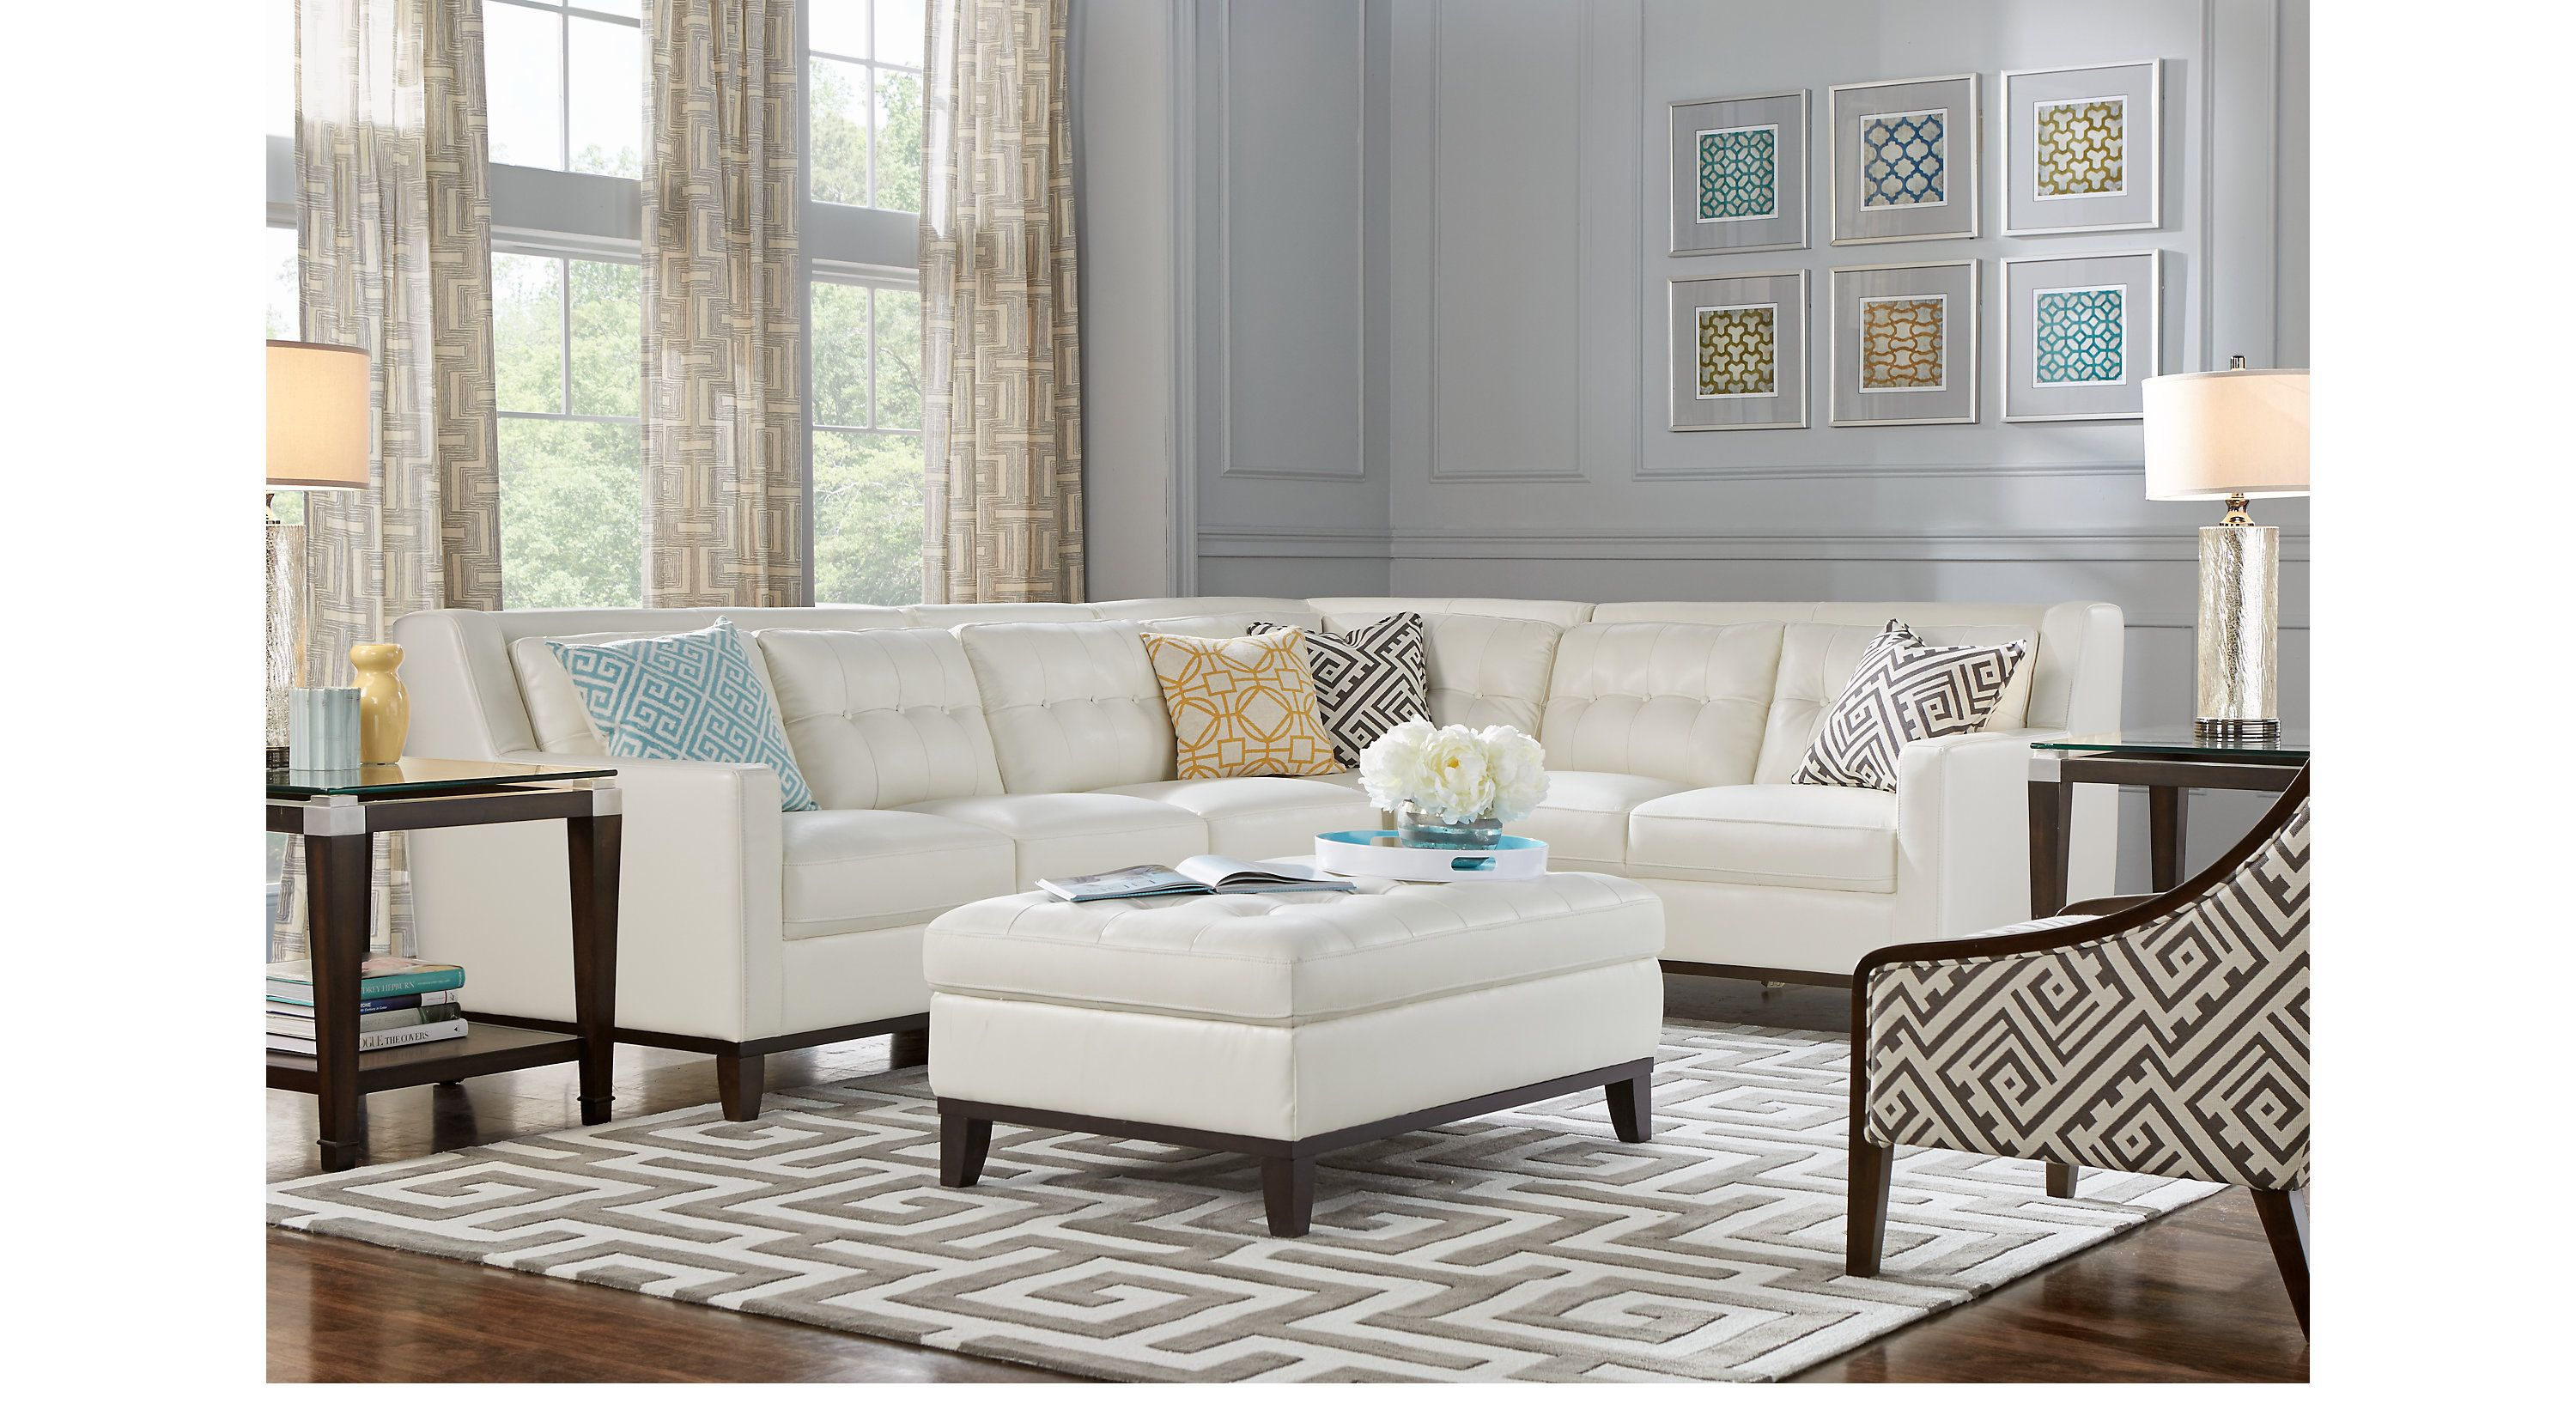 Living Room Sets - Rooms To Go - Reina Point White Leather 5 ...